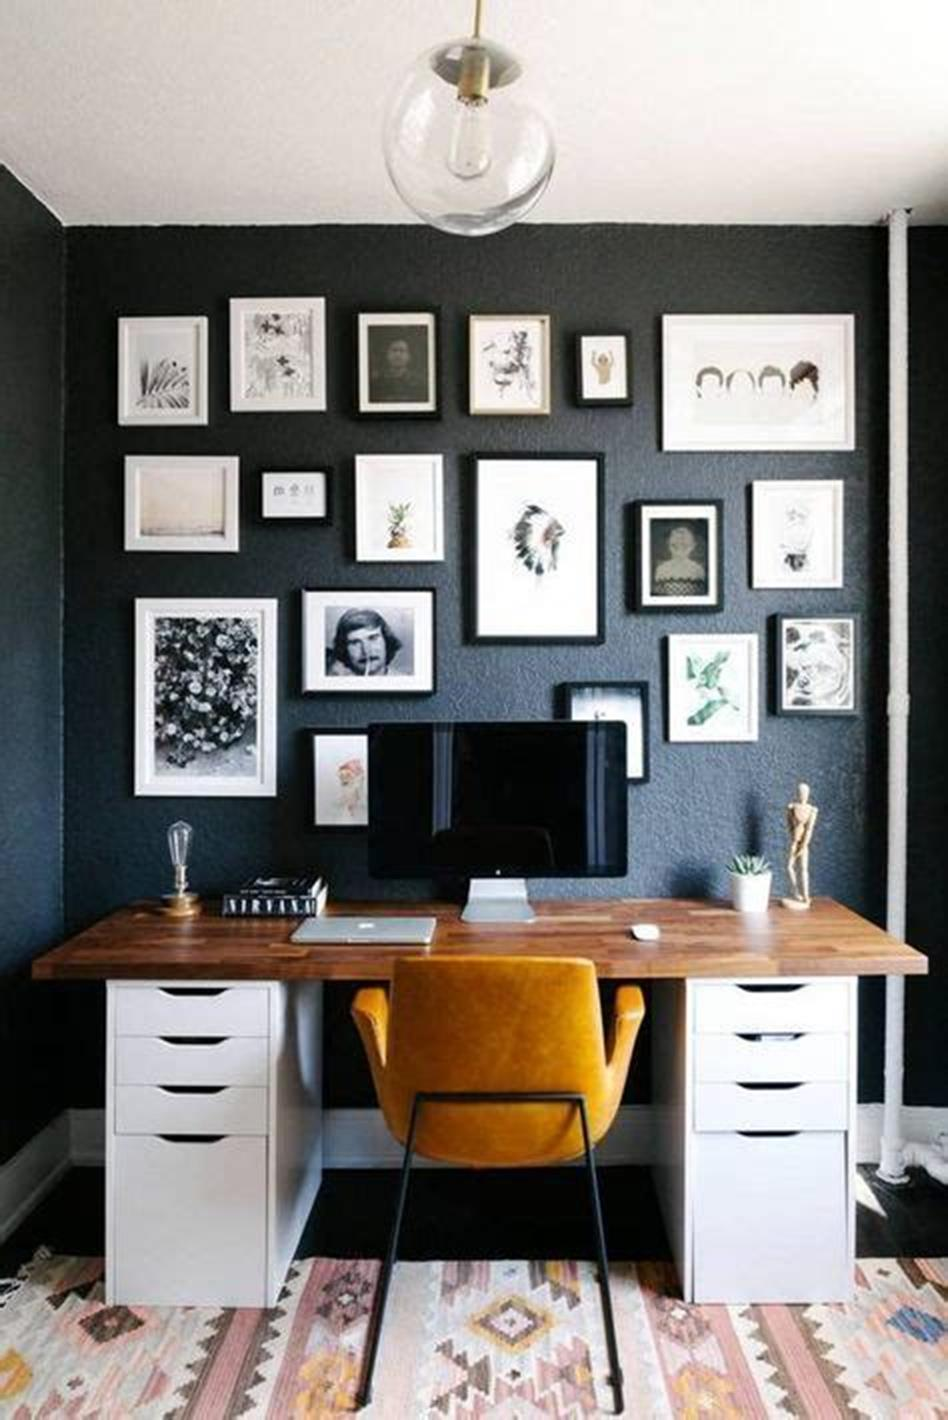 50 Best Small Space Office Decorating Ideas On a Budget 2019 60